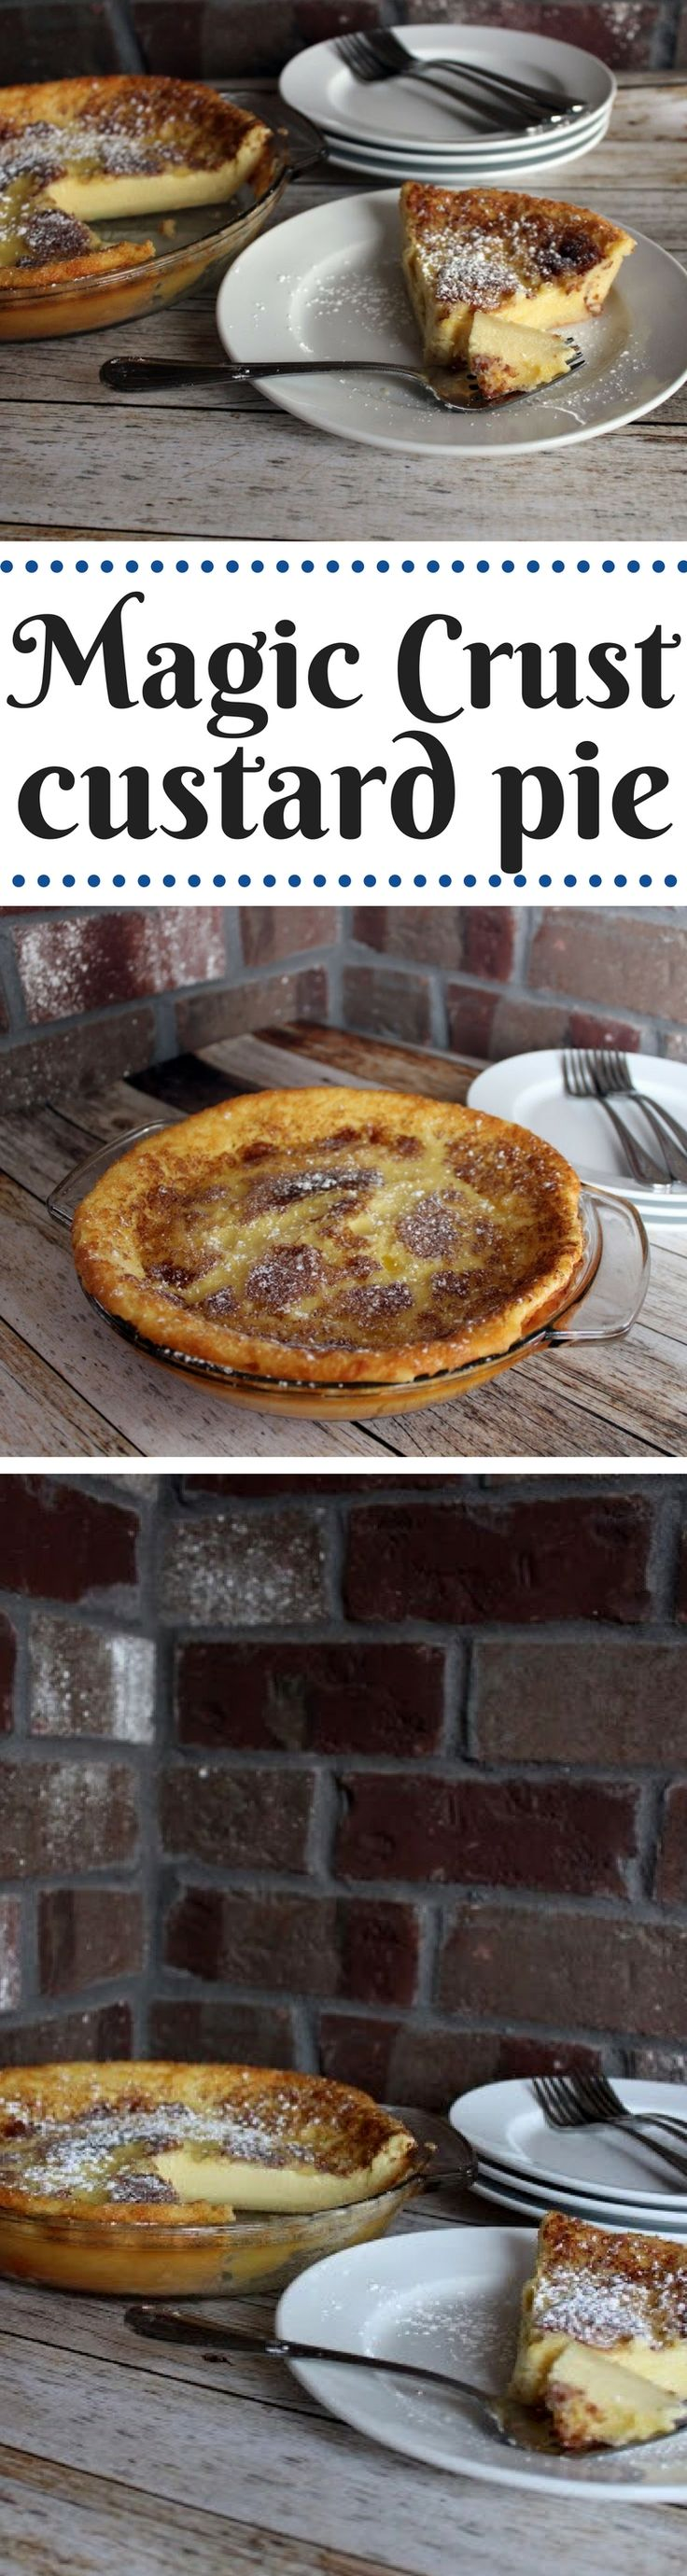 My mom used to make this yummy custard. The flour settles to the bottom and creates its own crust. Easy and very good!